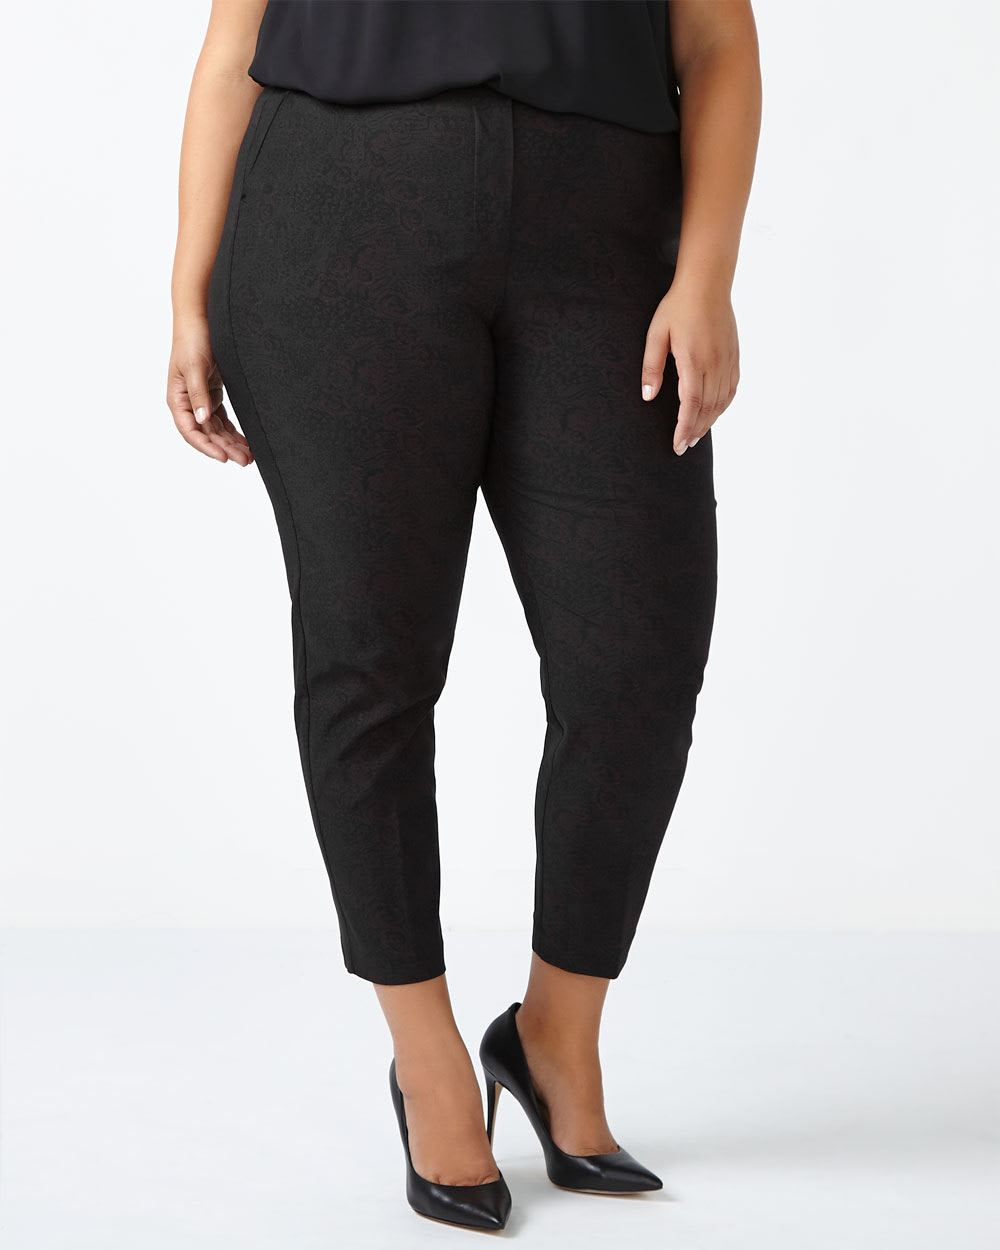 Savvy Chic Patterned Ankle Pant